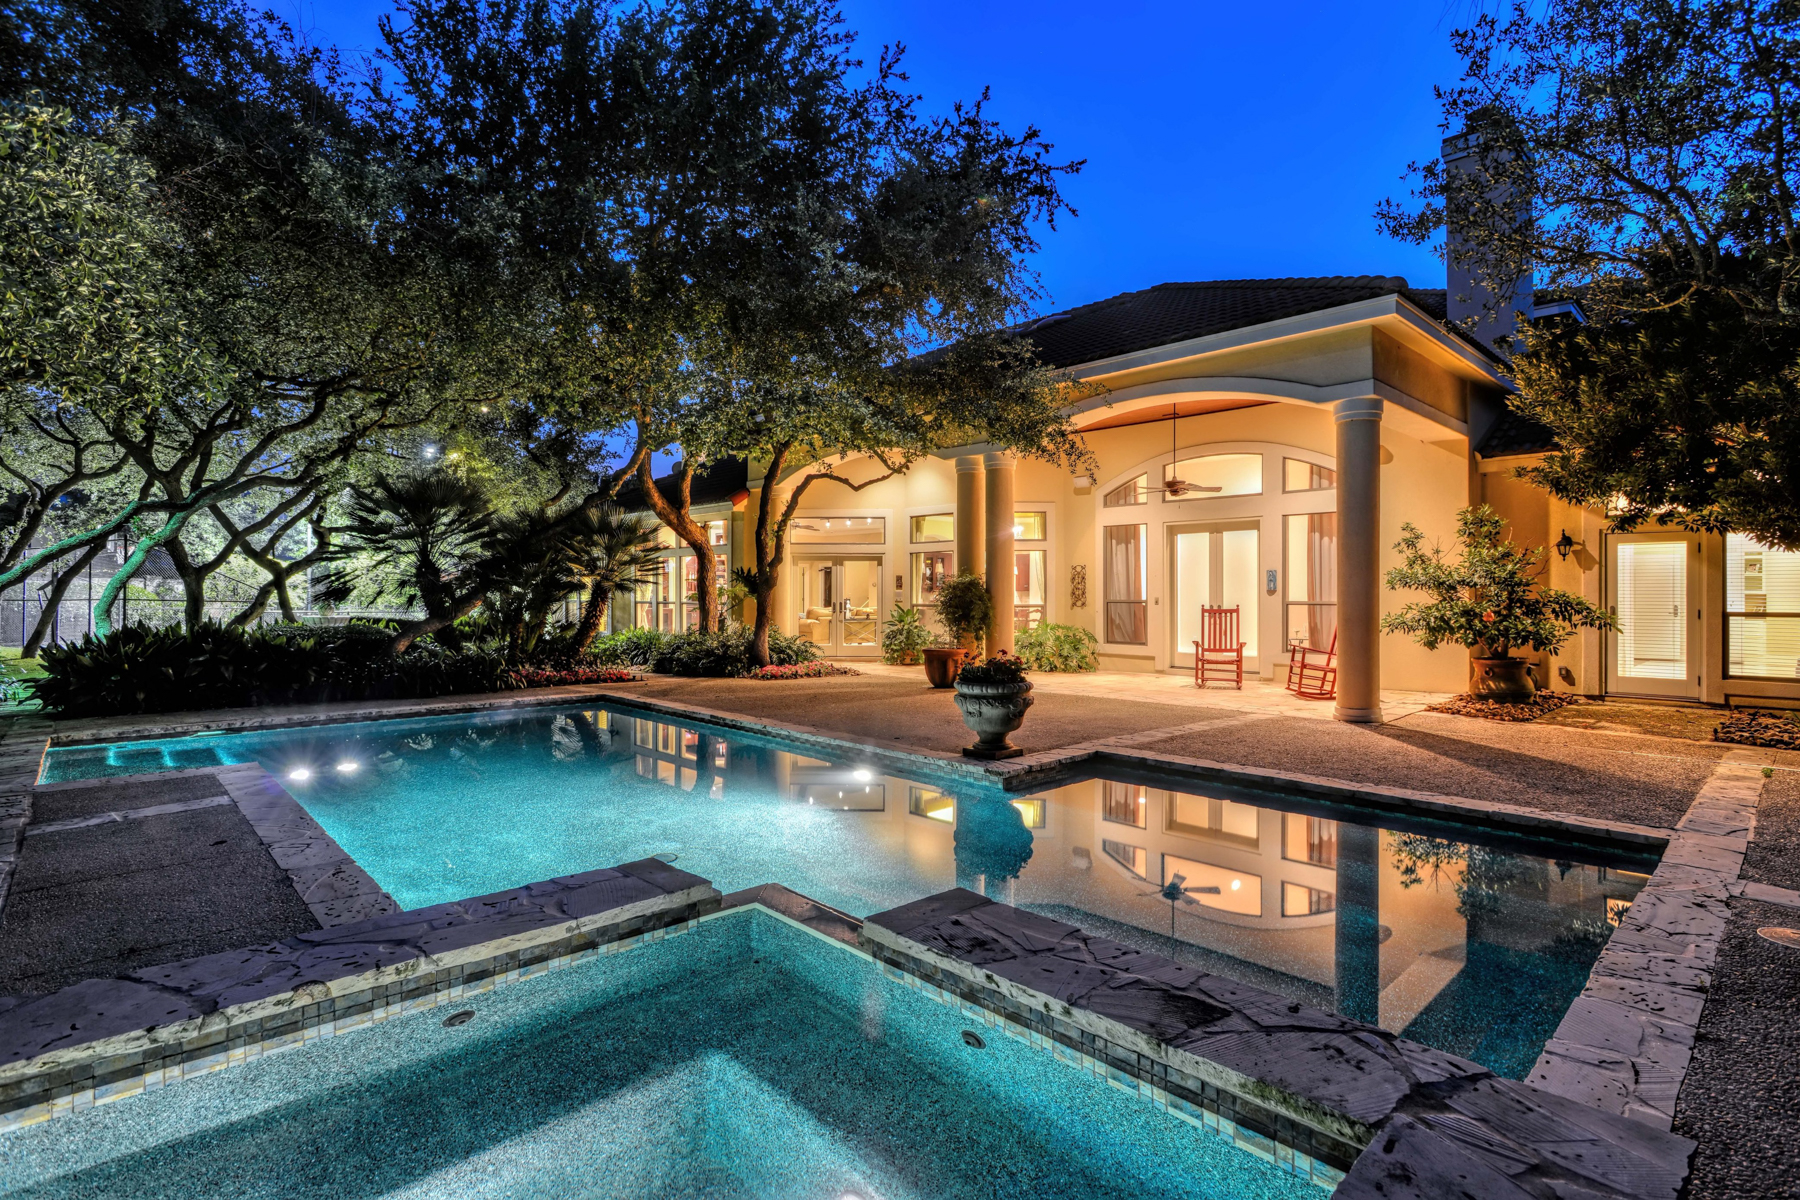 Additional photo for property listing at Meticulously Maintained Mediterranean Beauty 22 Sanctuary Dr San Antonio, Texas 78248 Estados Unidos